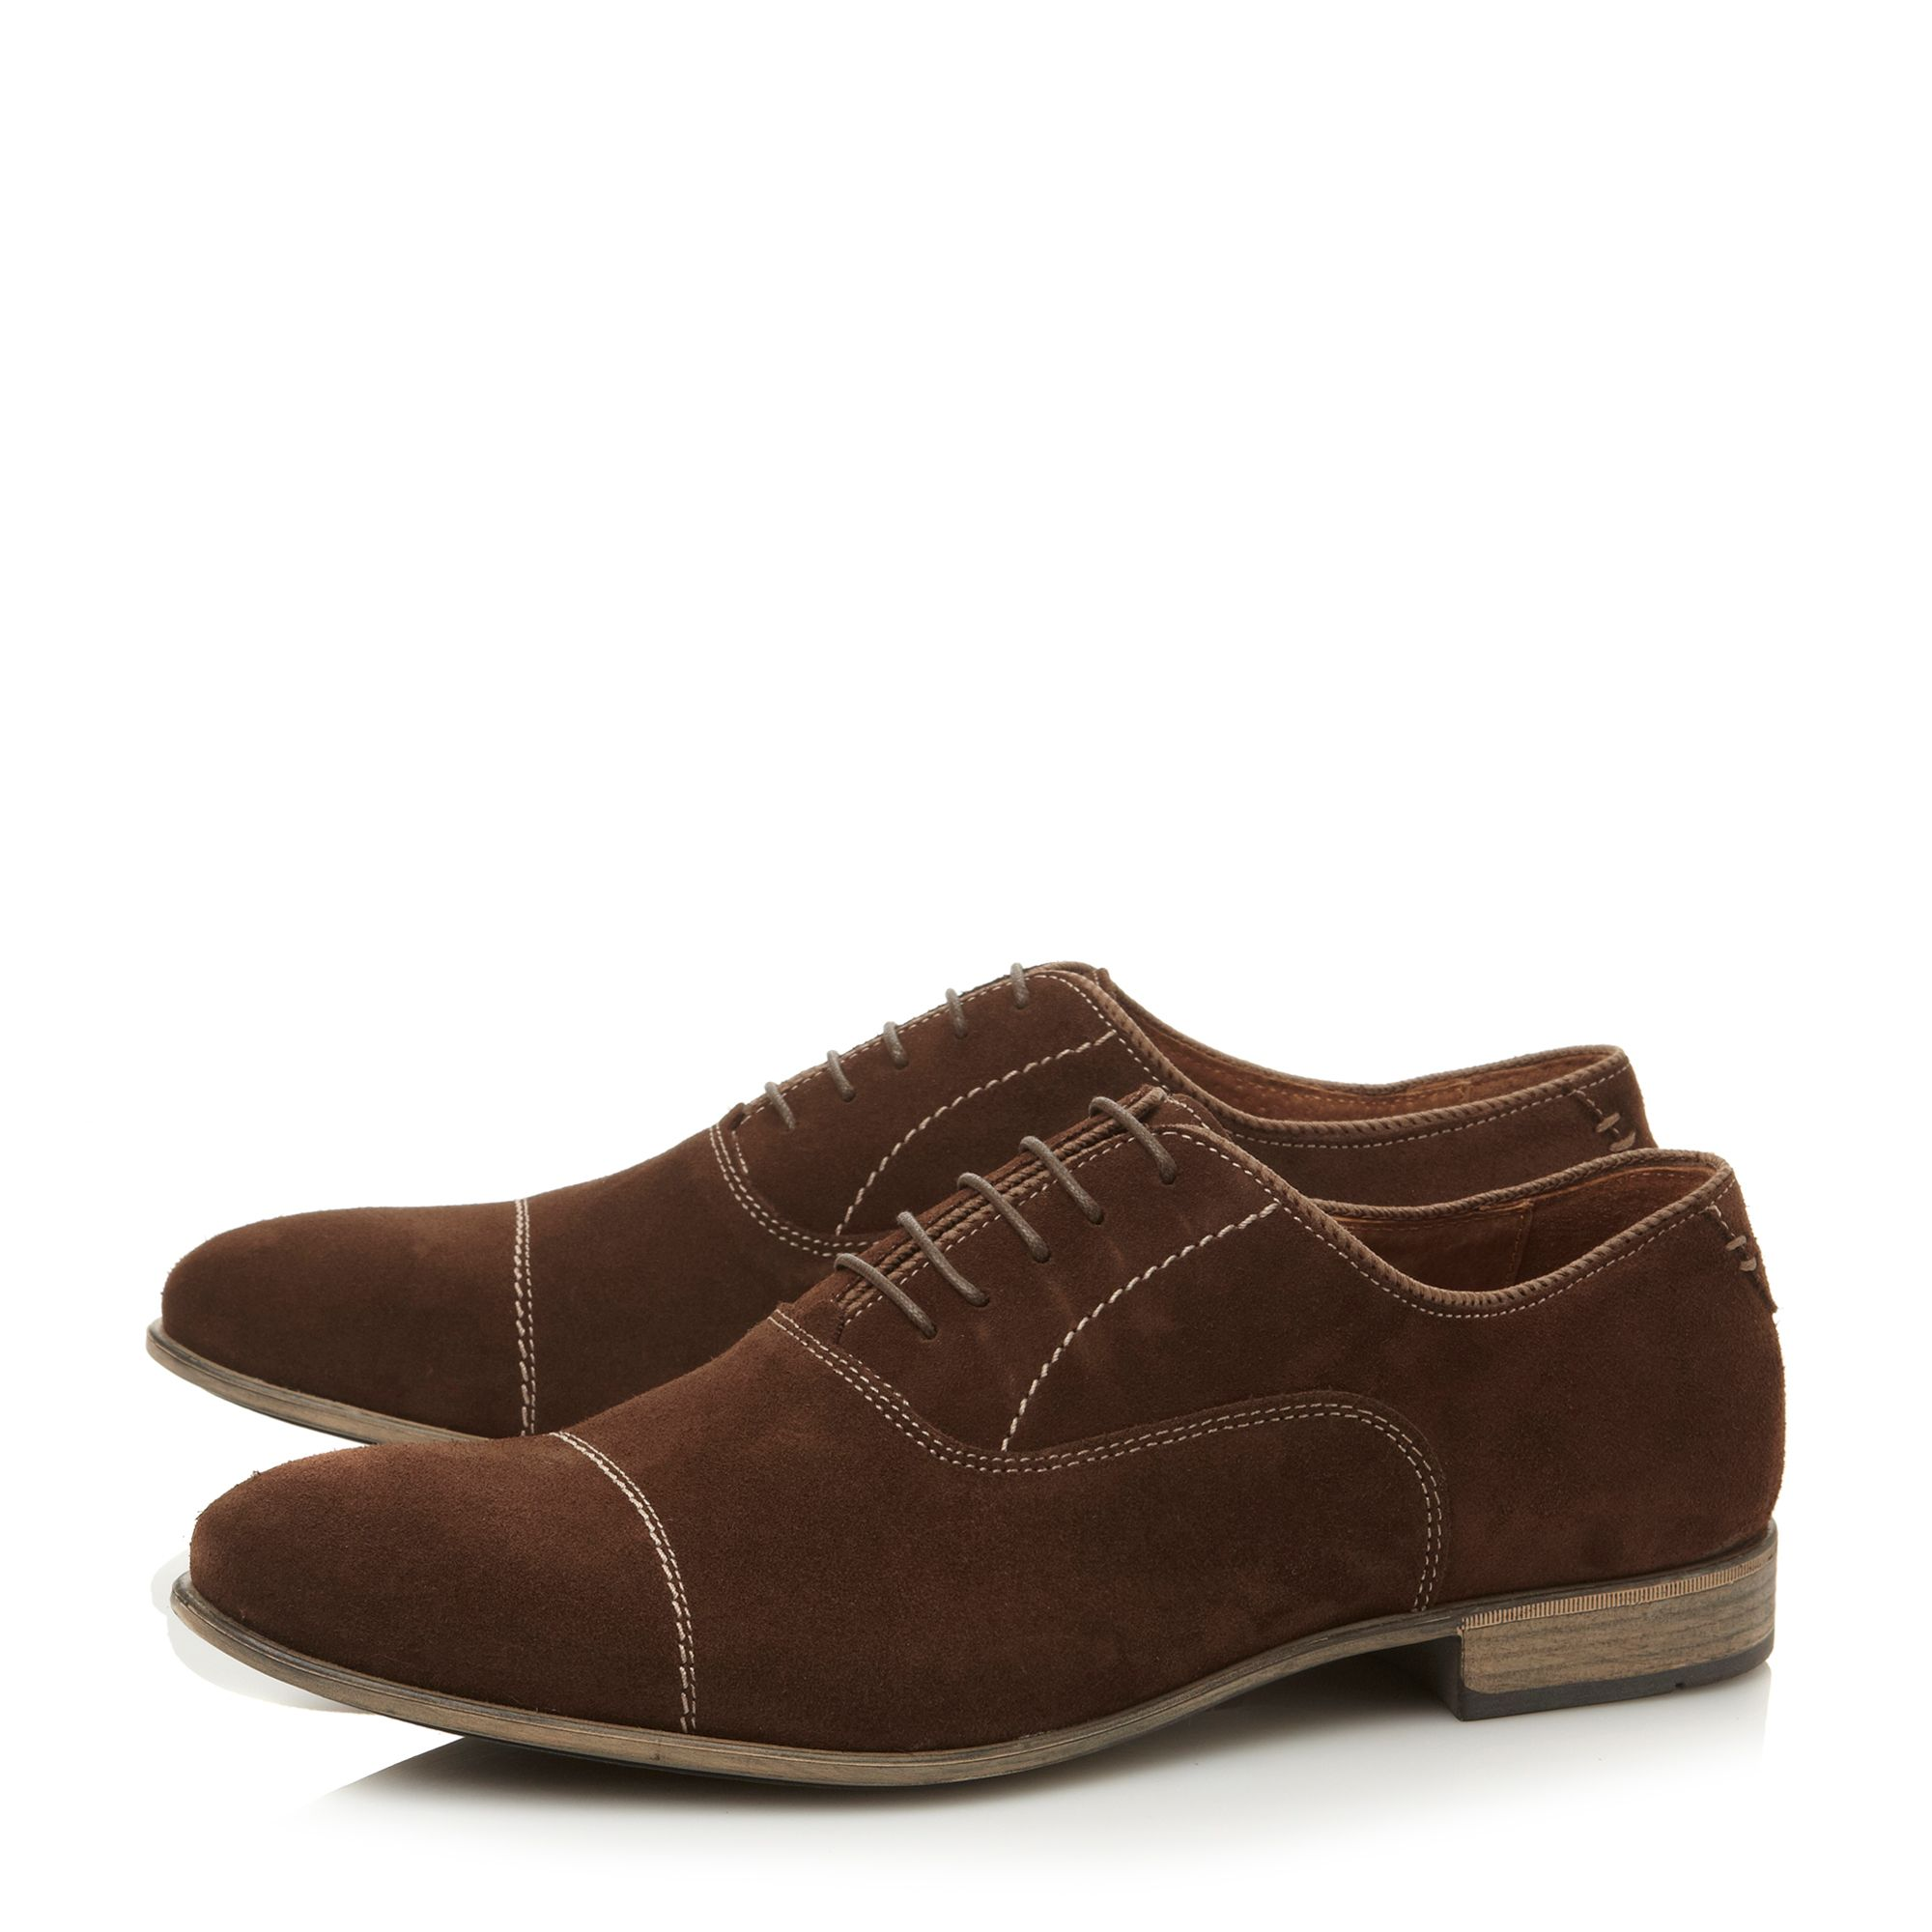 Bridgewater lace up stitched toecap oxford shoes